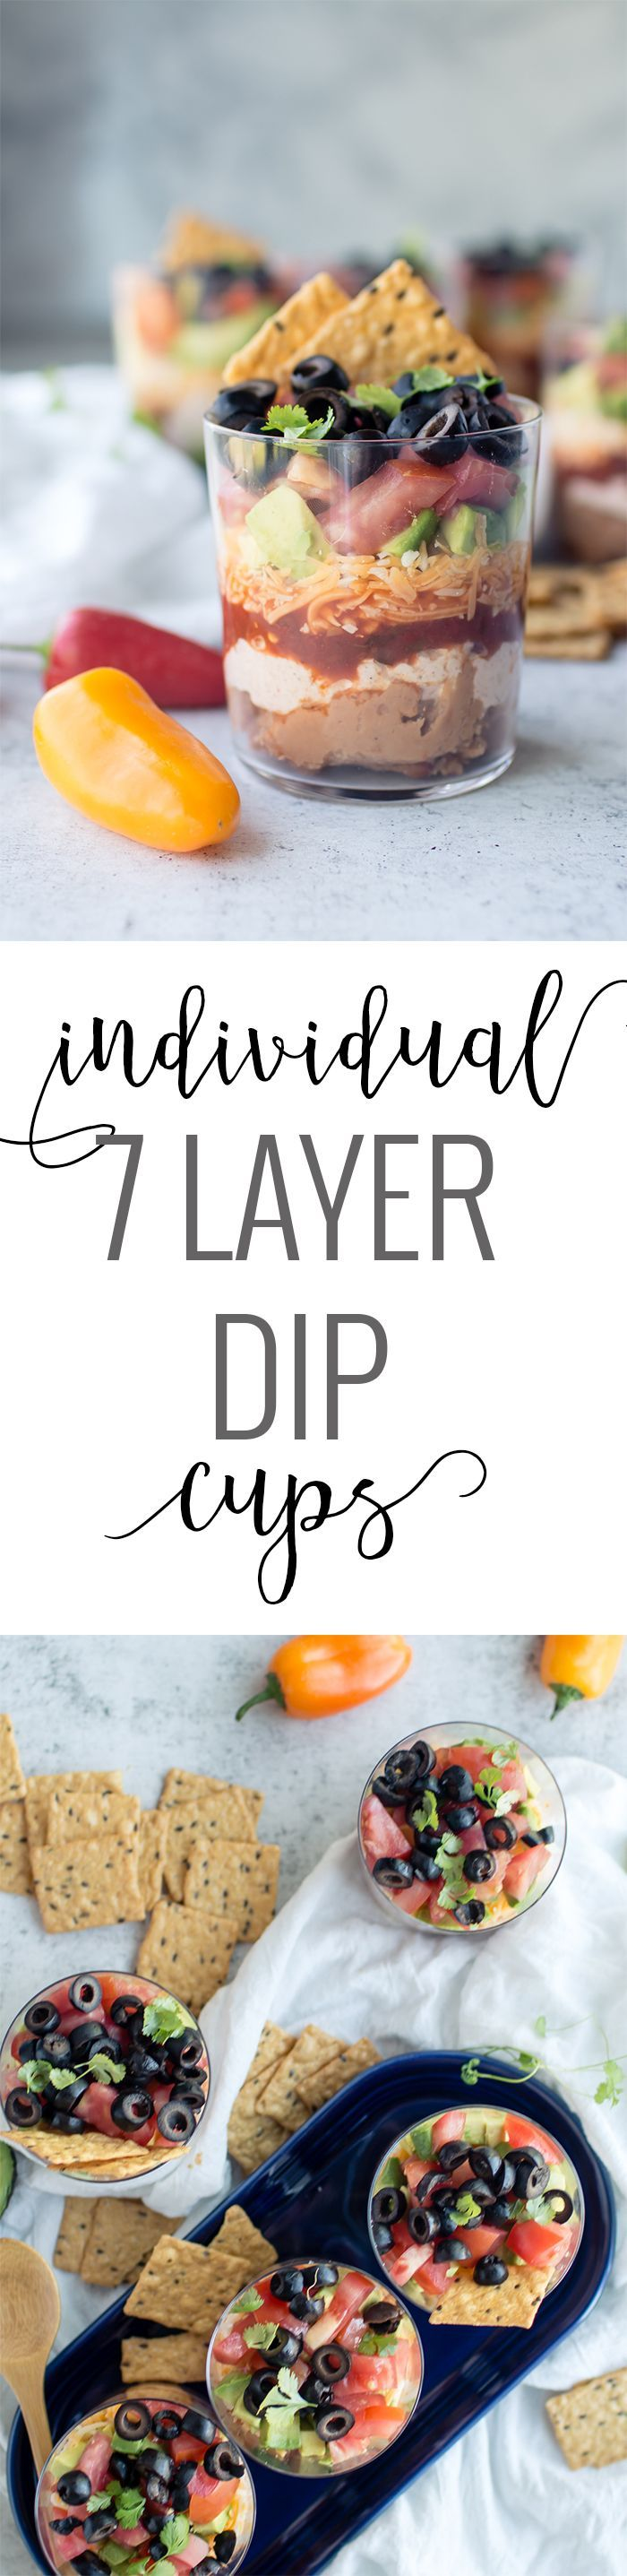 Individual Seven Layer Dip Cups | homemade dip recipes | 7 layer dip recipe | easy dip recipe | summer appetizer recipes | how to make a 7 layer dip | dip recipes easy || Oh So Delicioso